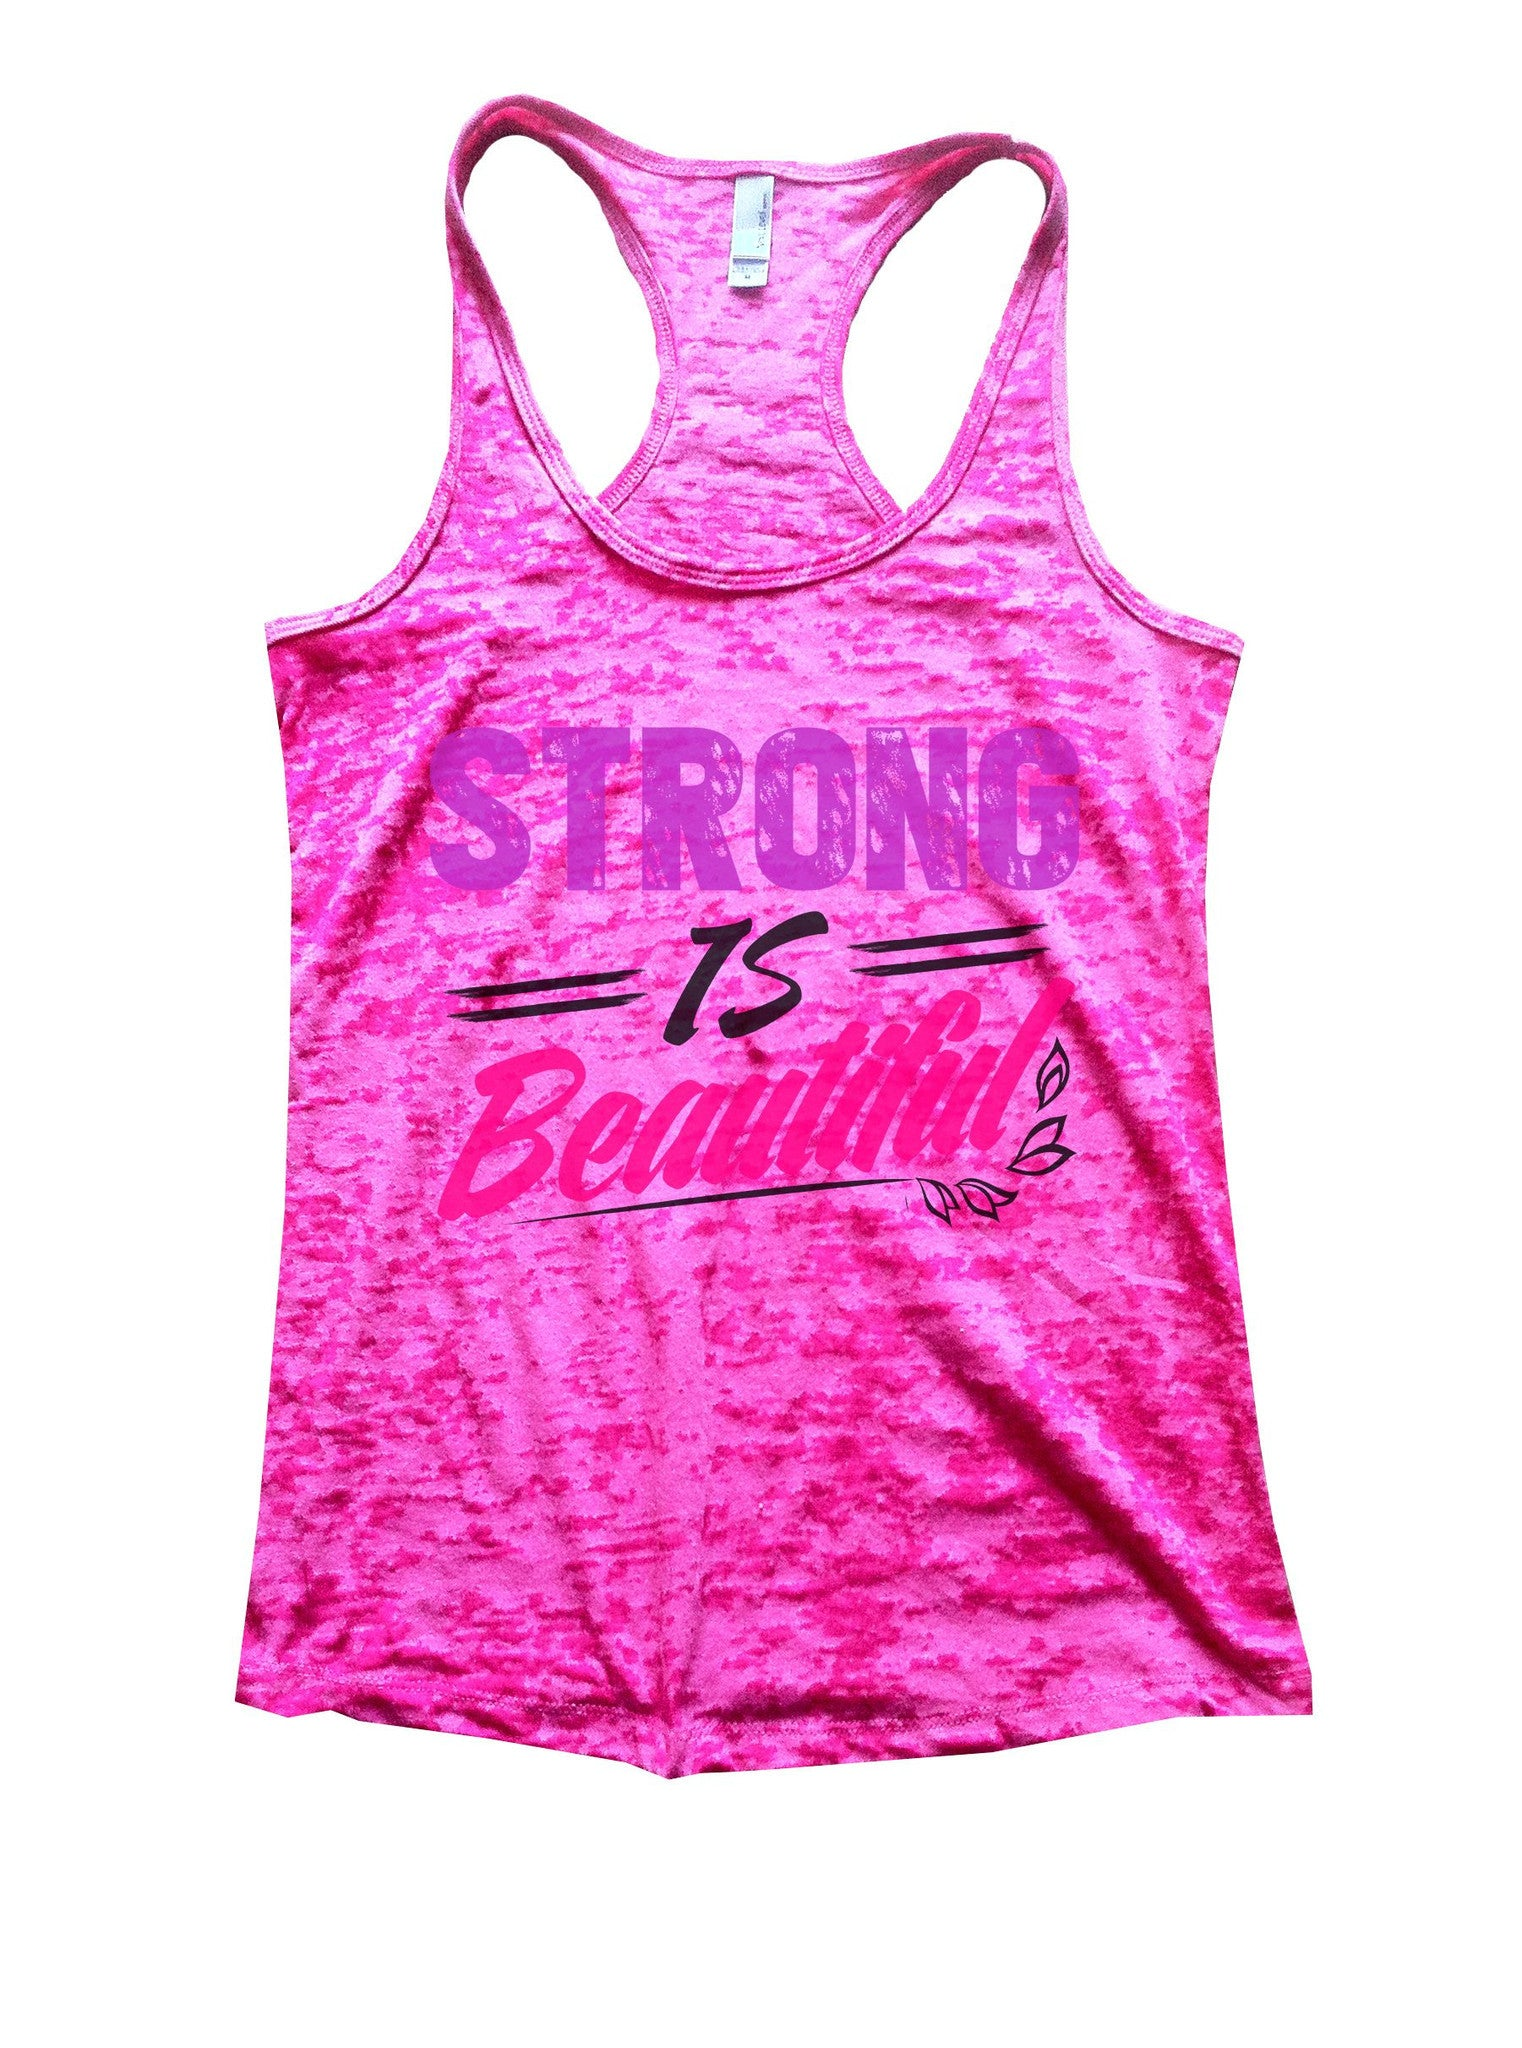 Strong Is Beautiful Burnout Tank Top By BurnoutTankTops.com - 1034 - Funny Shirts Tank Tops Burnouts and Triblends  - 5